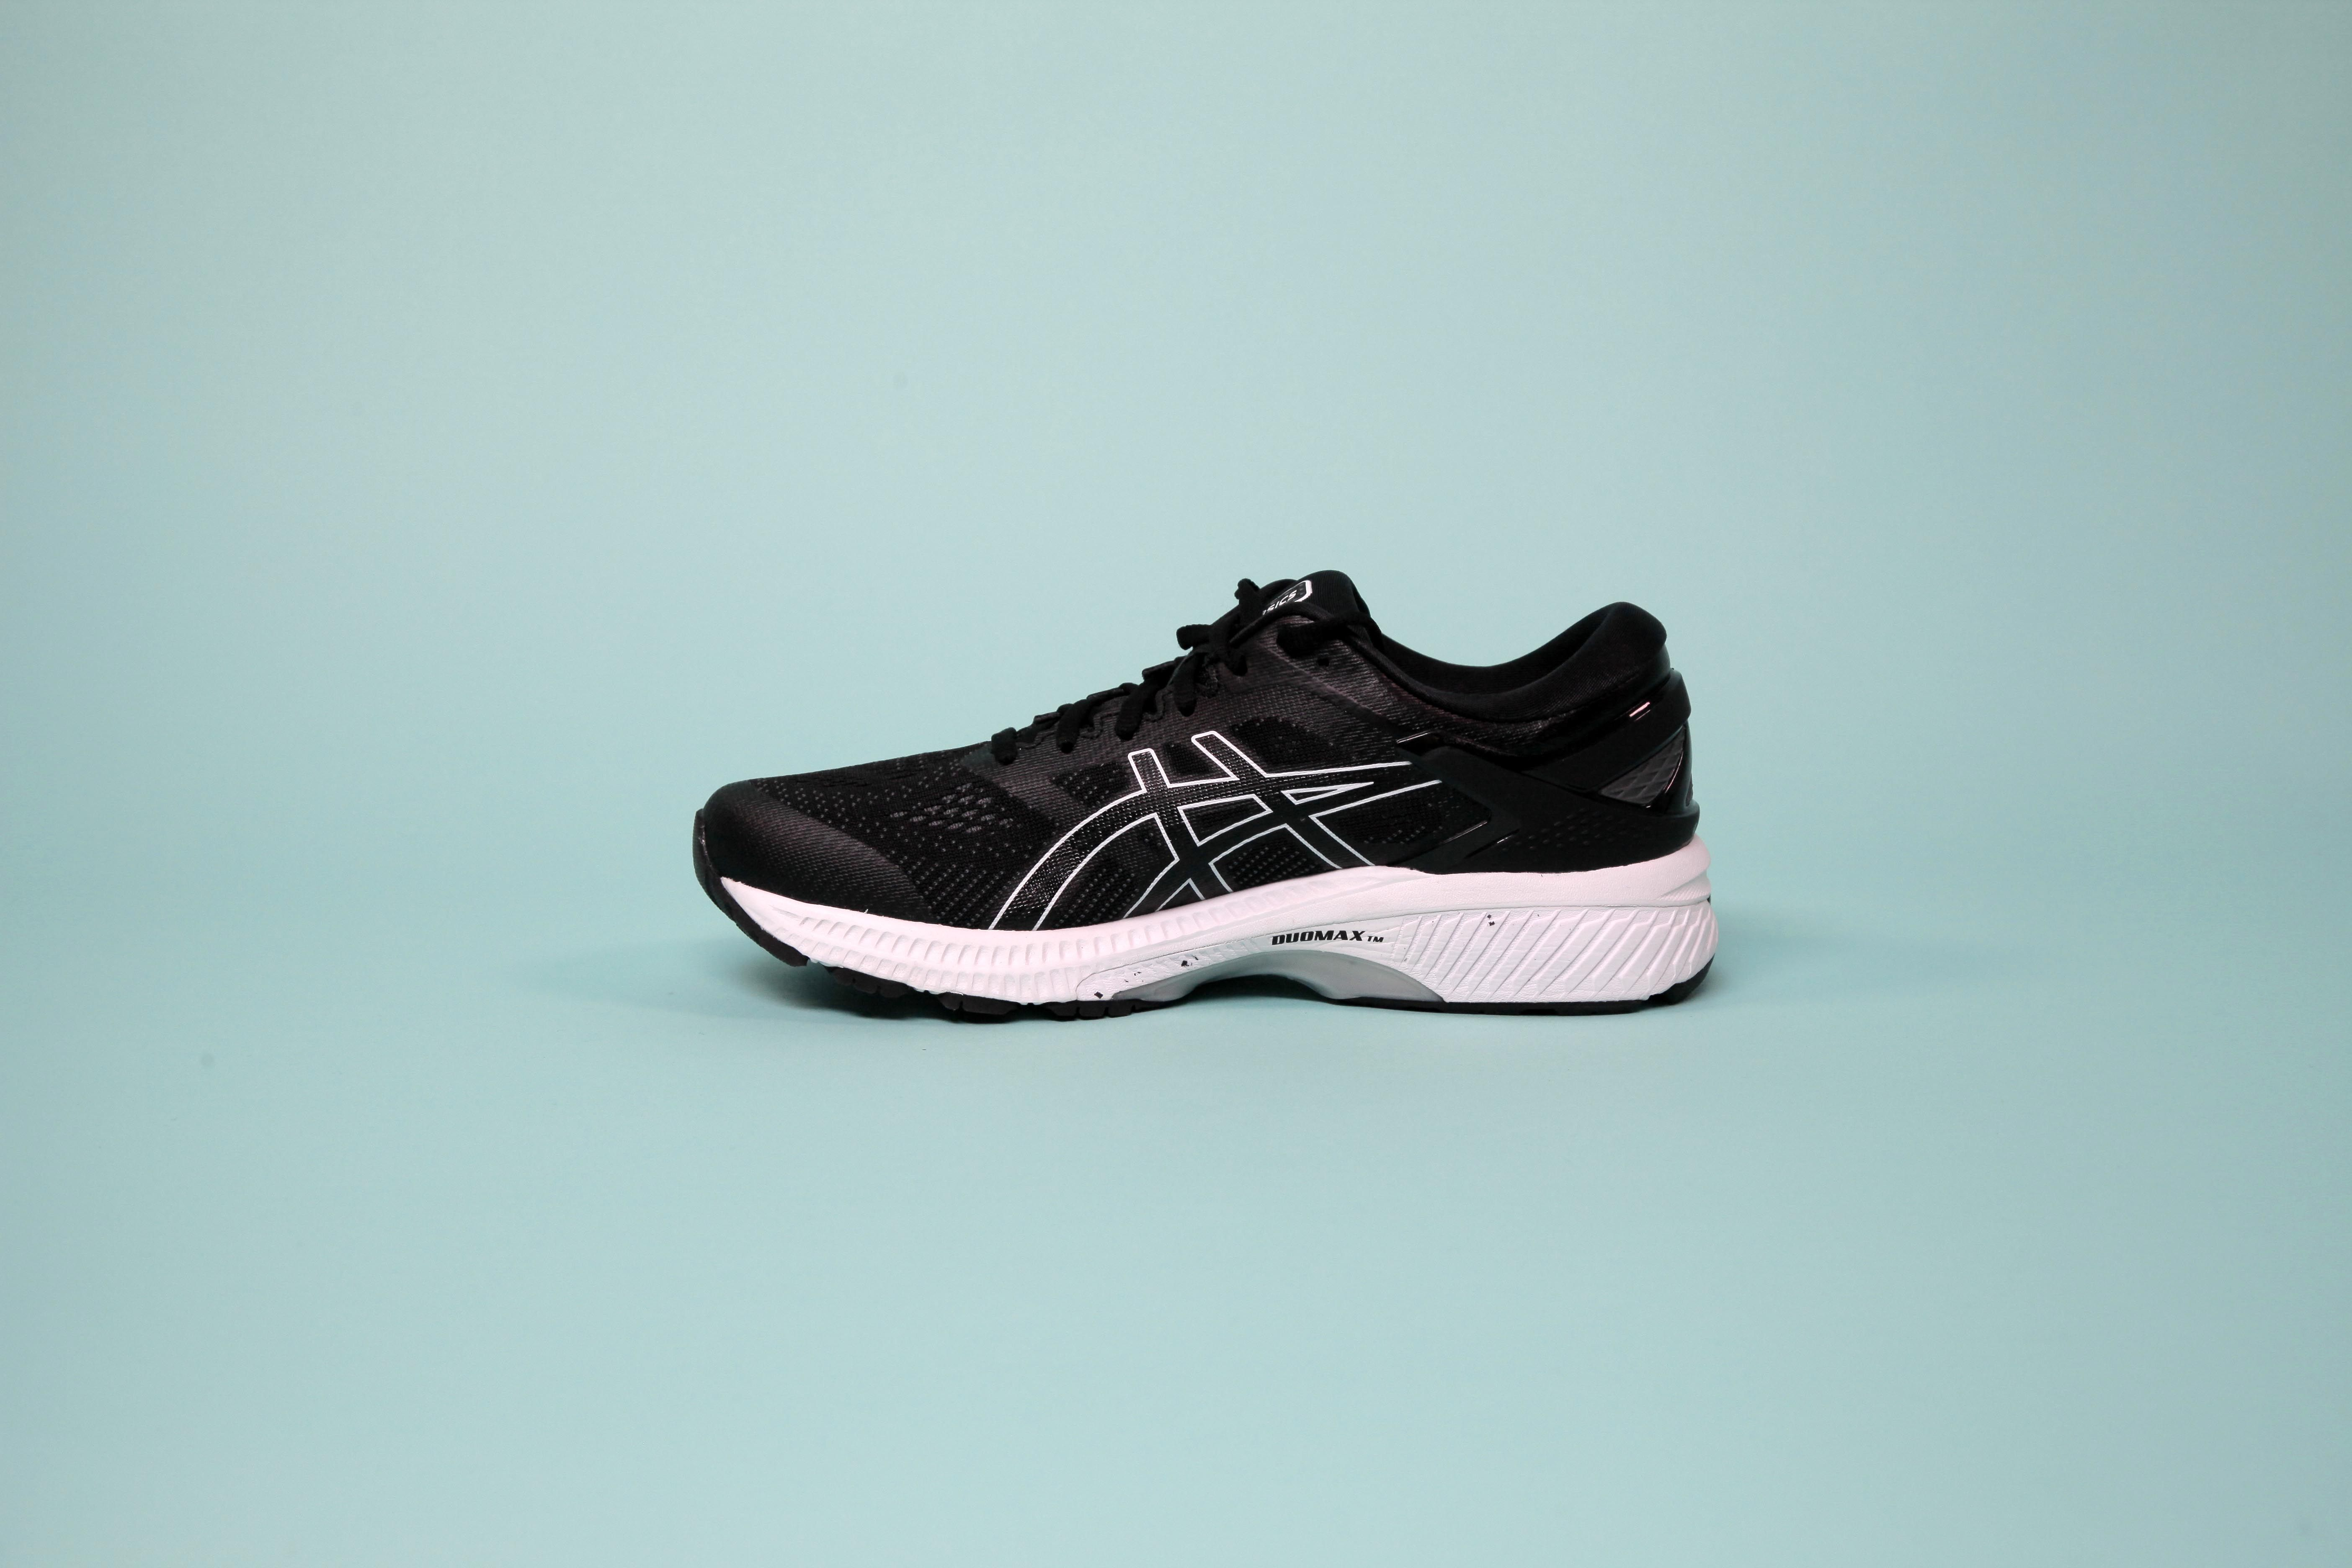 Asics Gel Kayano 26 is a reliable shoe